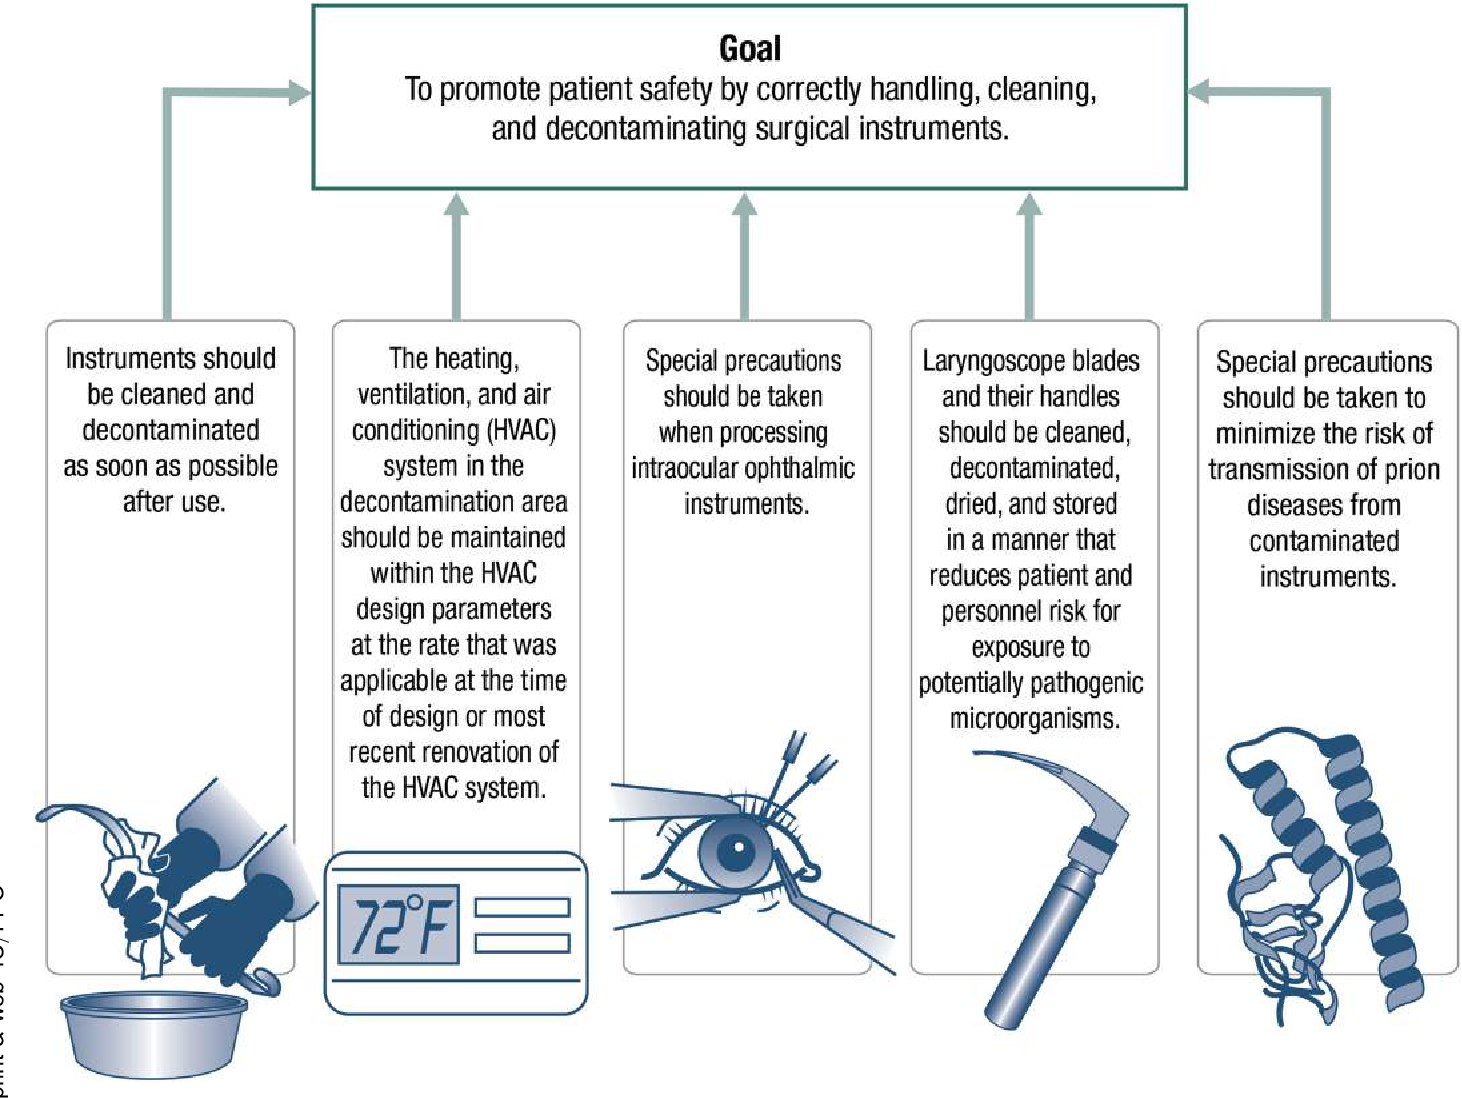 Figure 1 from Guideline implementation: surgical instrument cleaning